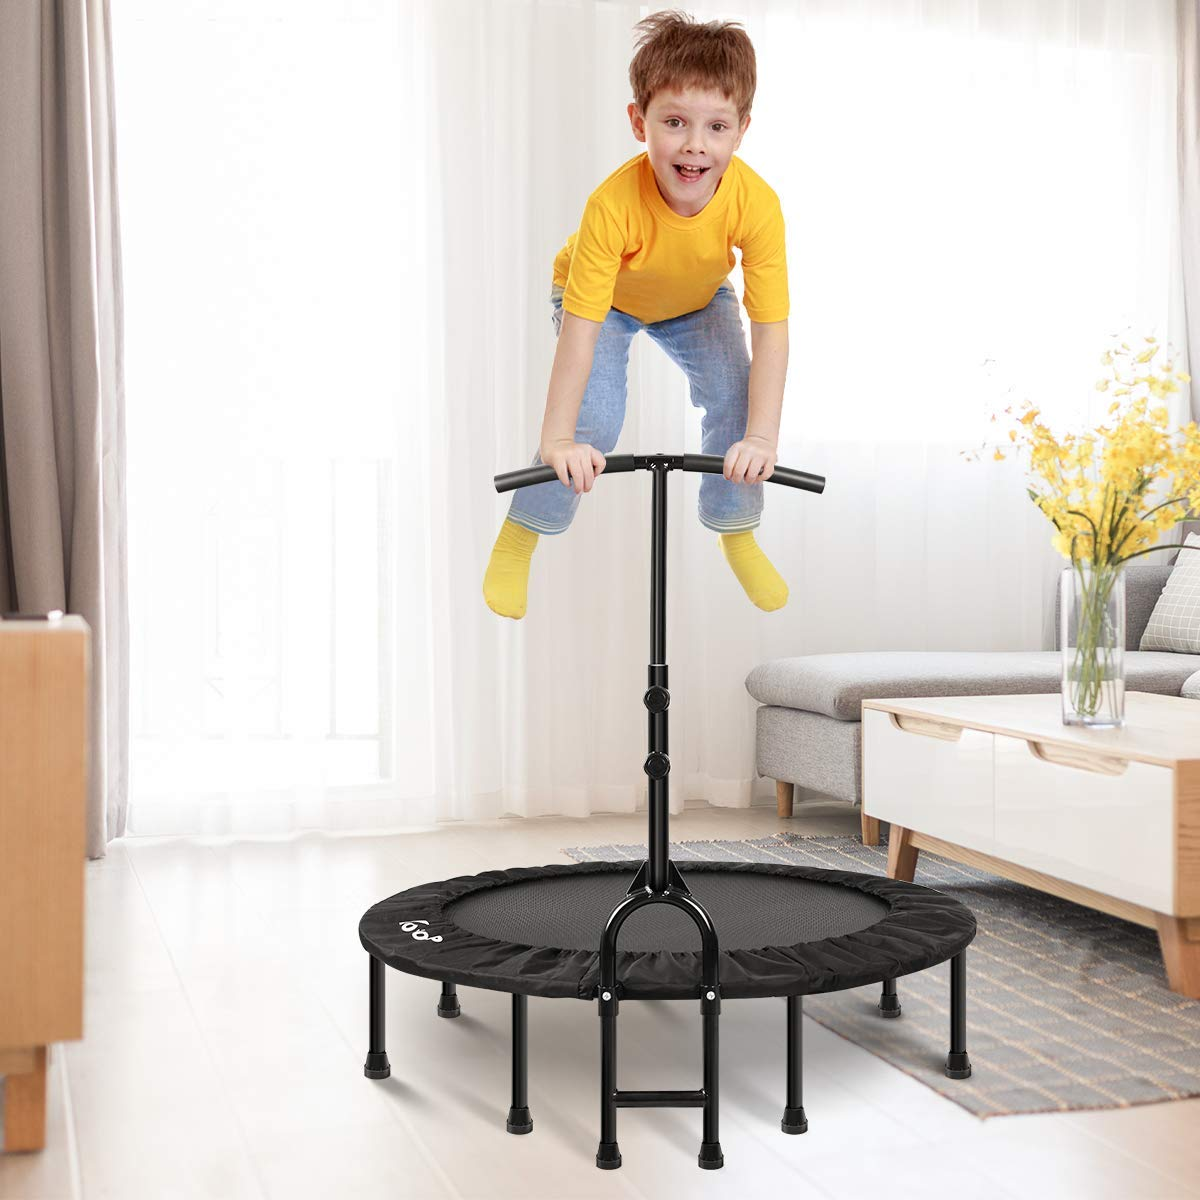 MOVTOTOP 48 40 Inch Indoor Trampoline, Folding Mini Trampoline with Adjustable Handrail and Safety Pad, Exercise Rebounder for Kids Adults-Black (40 Inch-Foldable) by MOVTOTOP (Image #2)